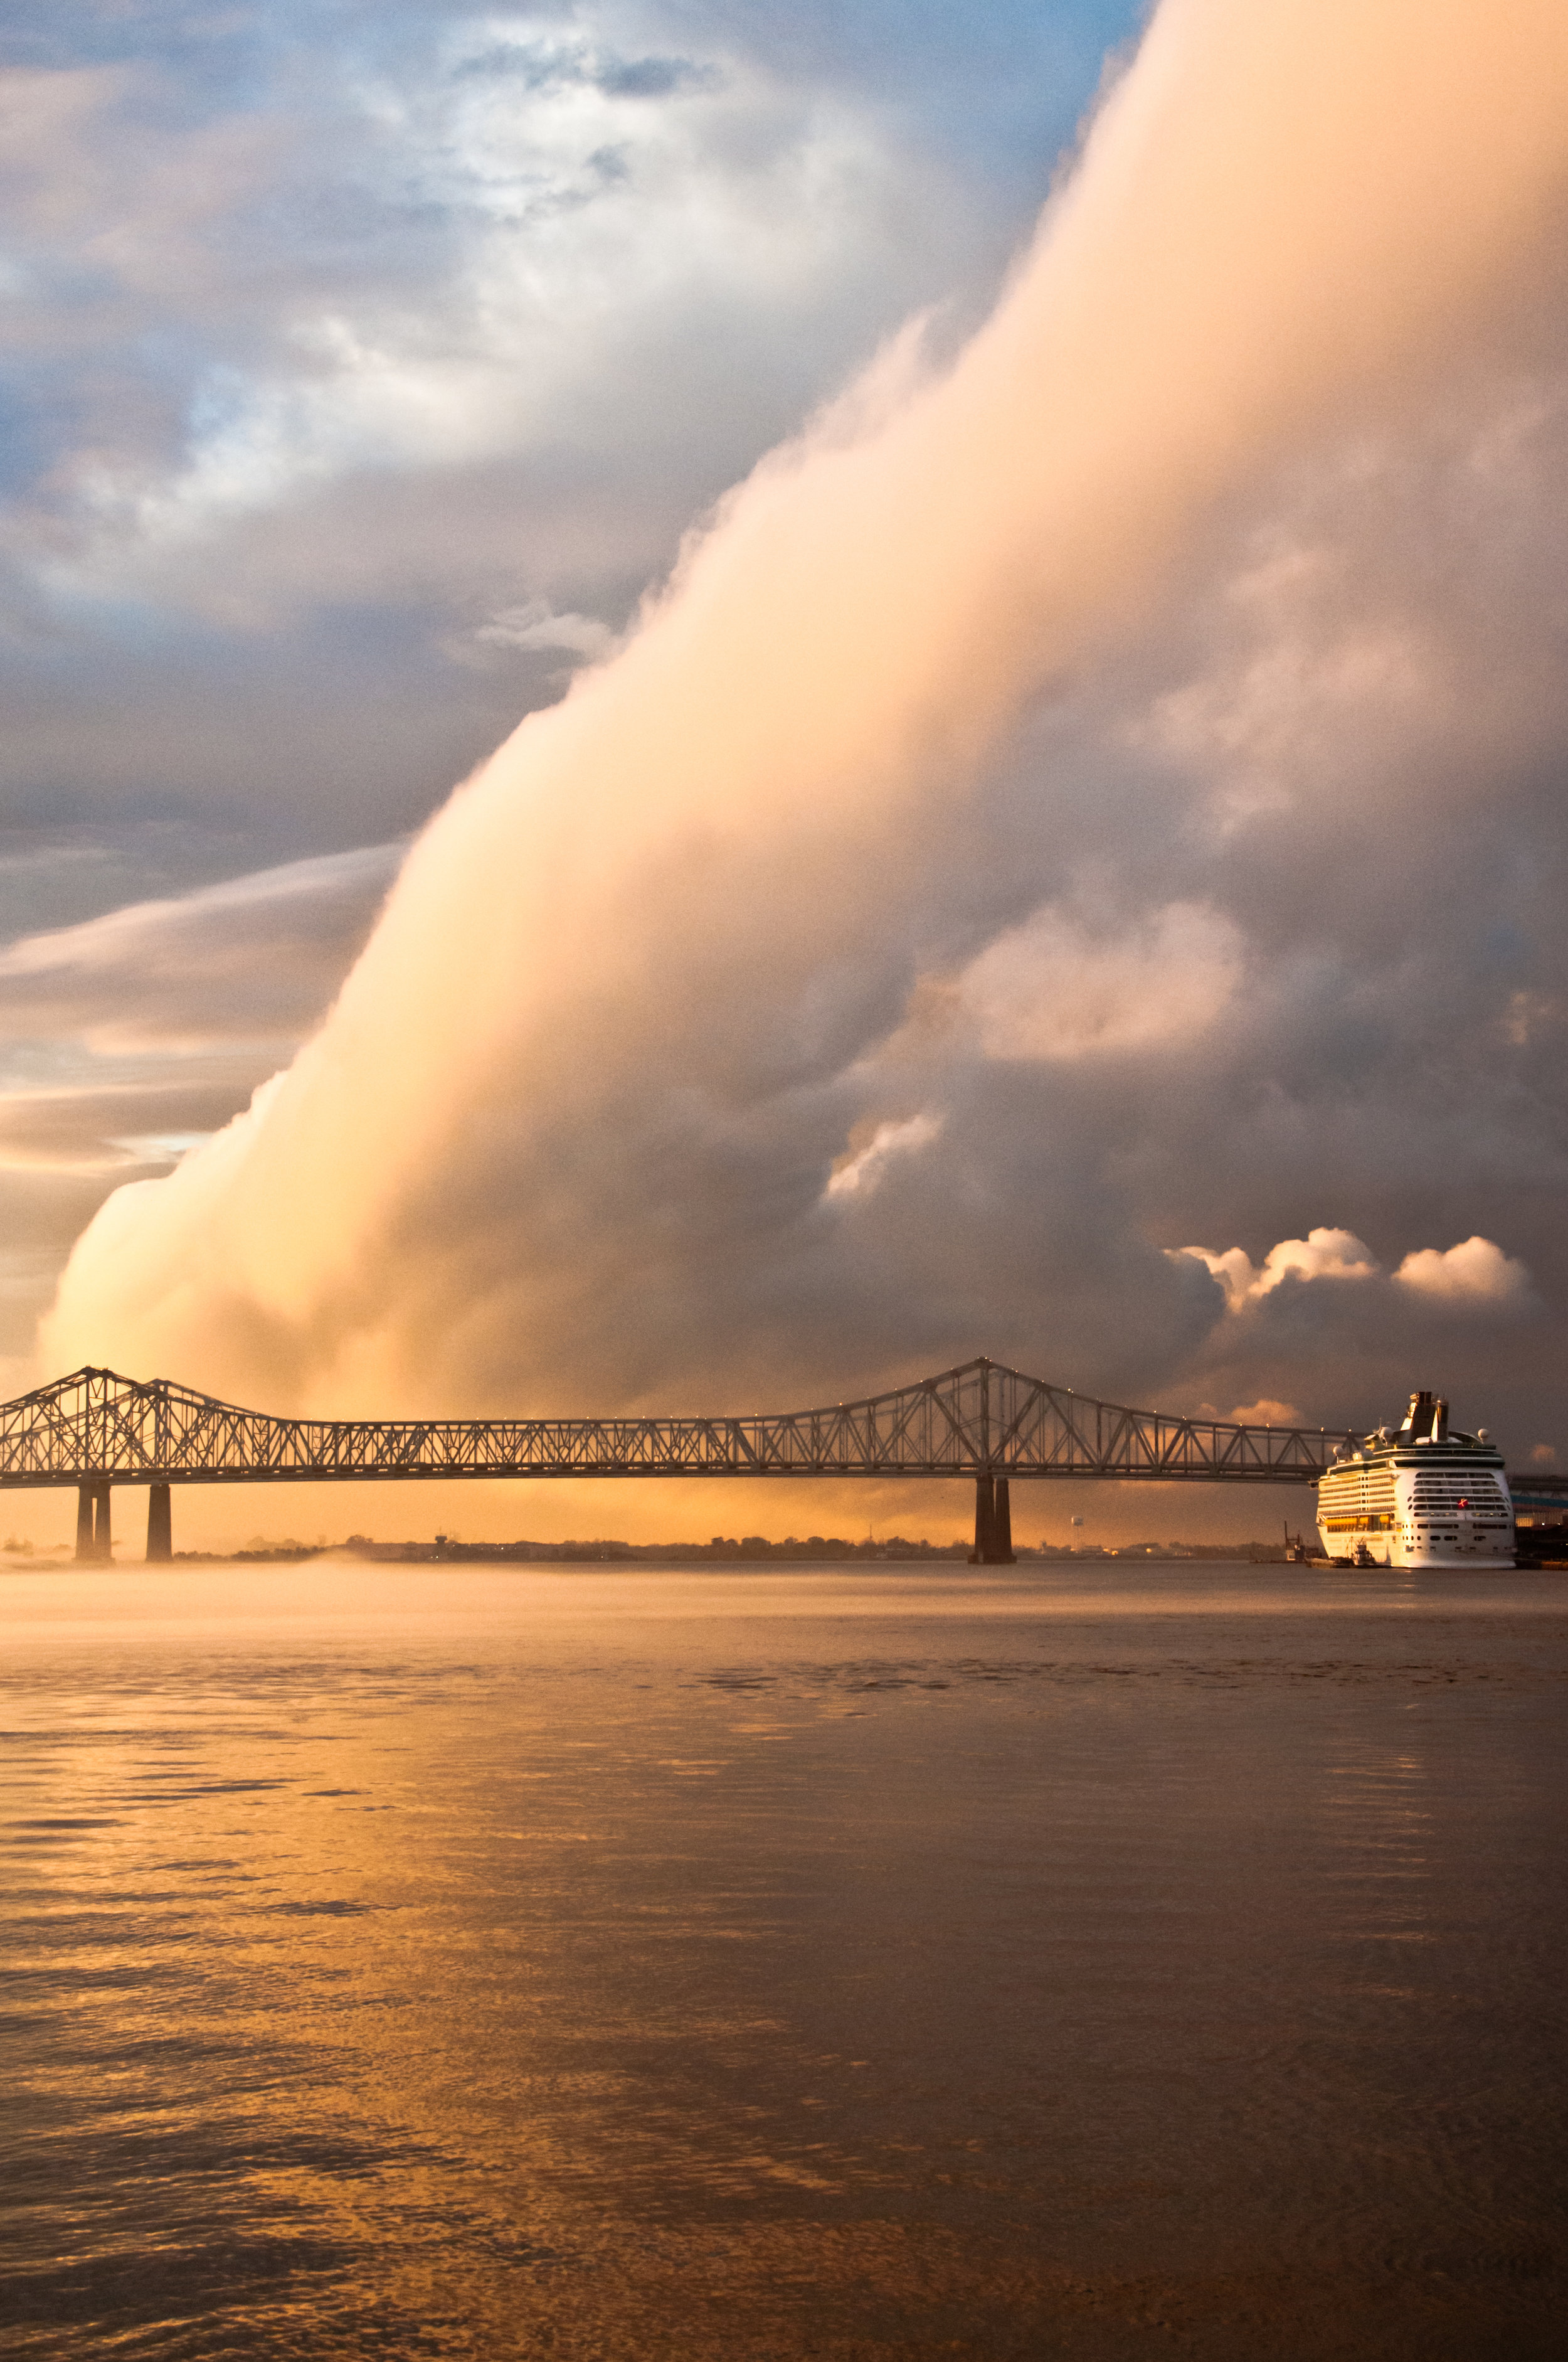 Cloudburst - New Orleans - 2012